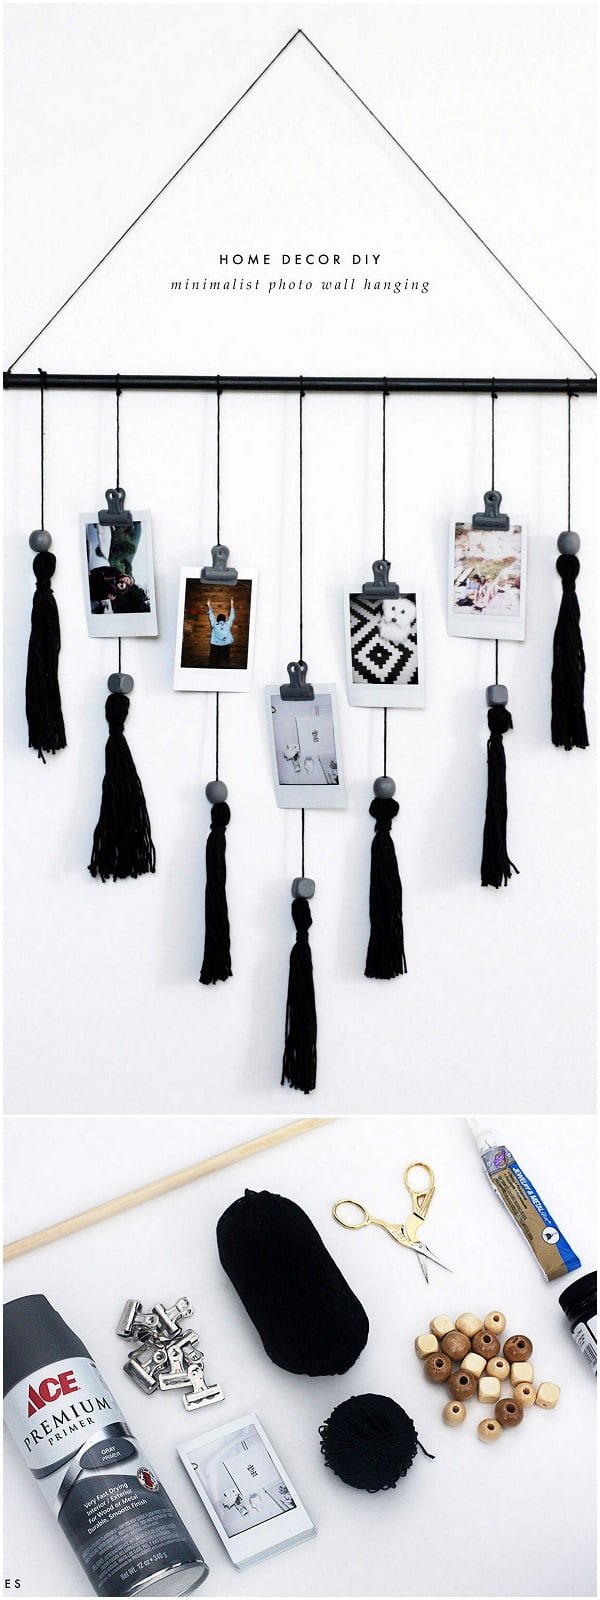 Check out this easy idea on how to make a #DIY minimalist wall hanging #homedecor #crafts #project